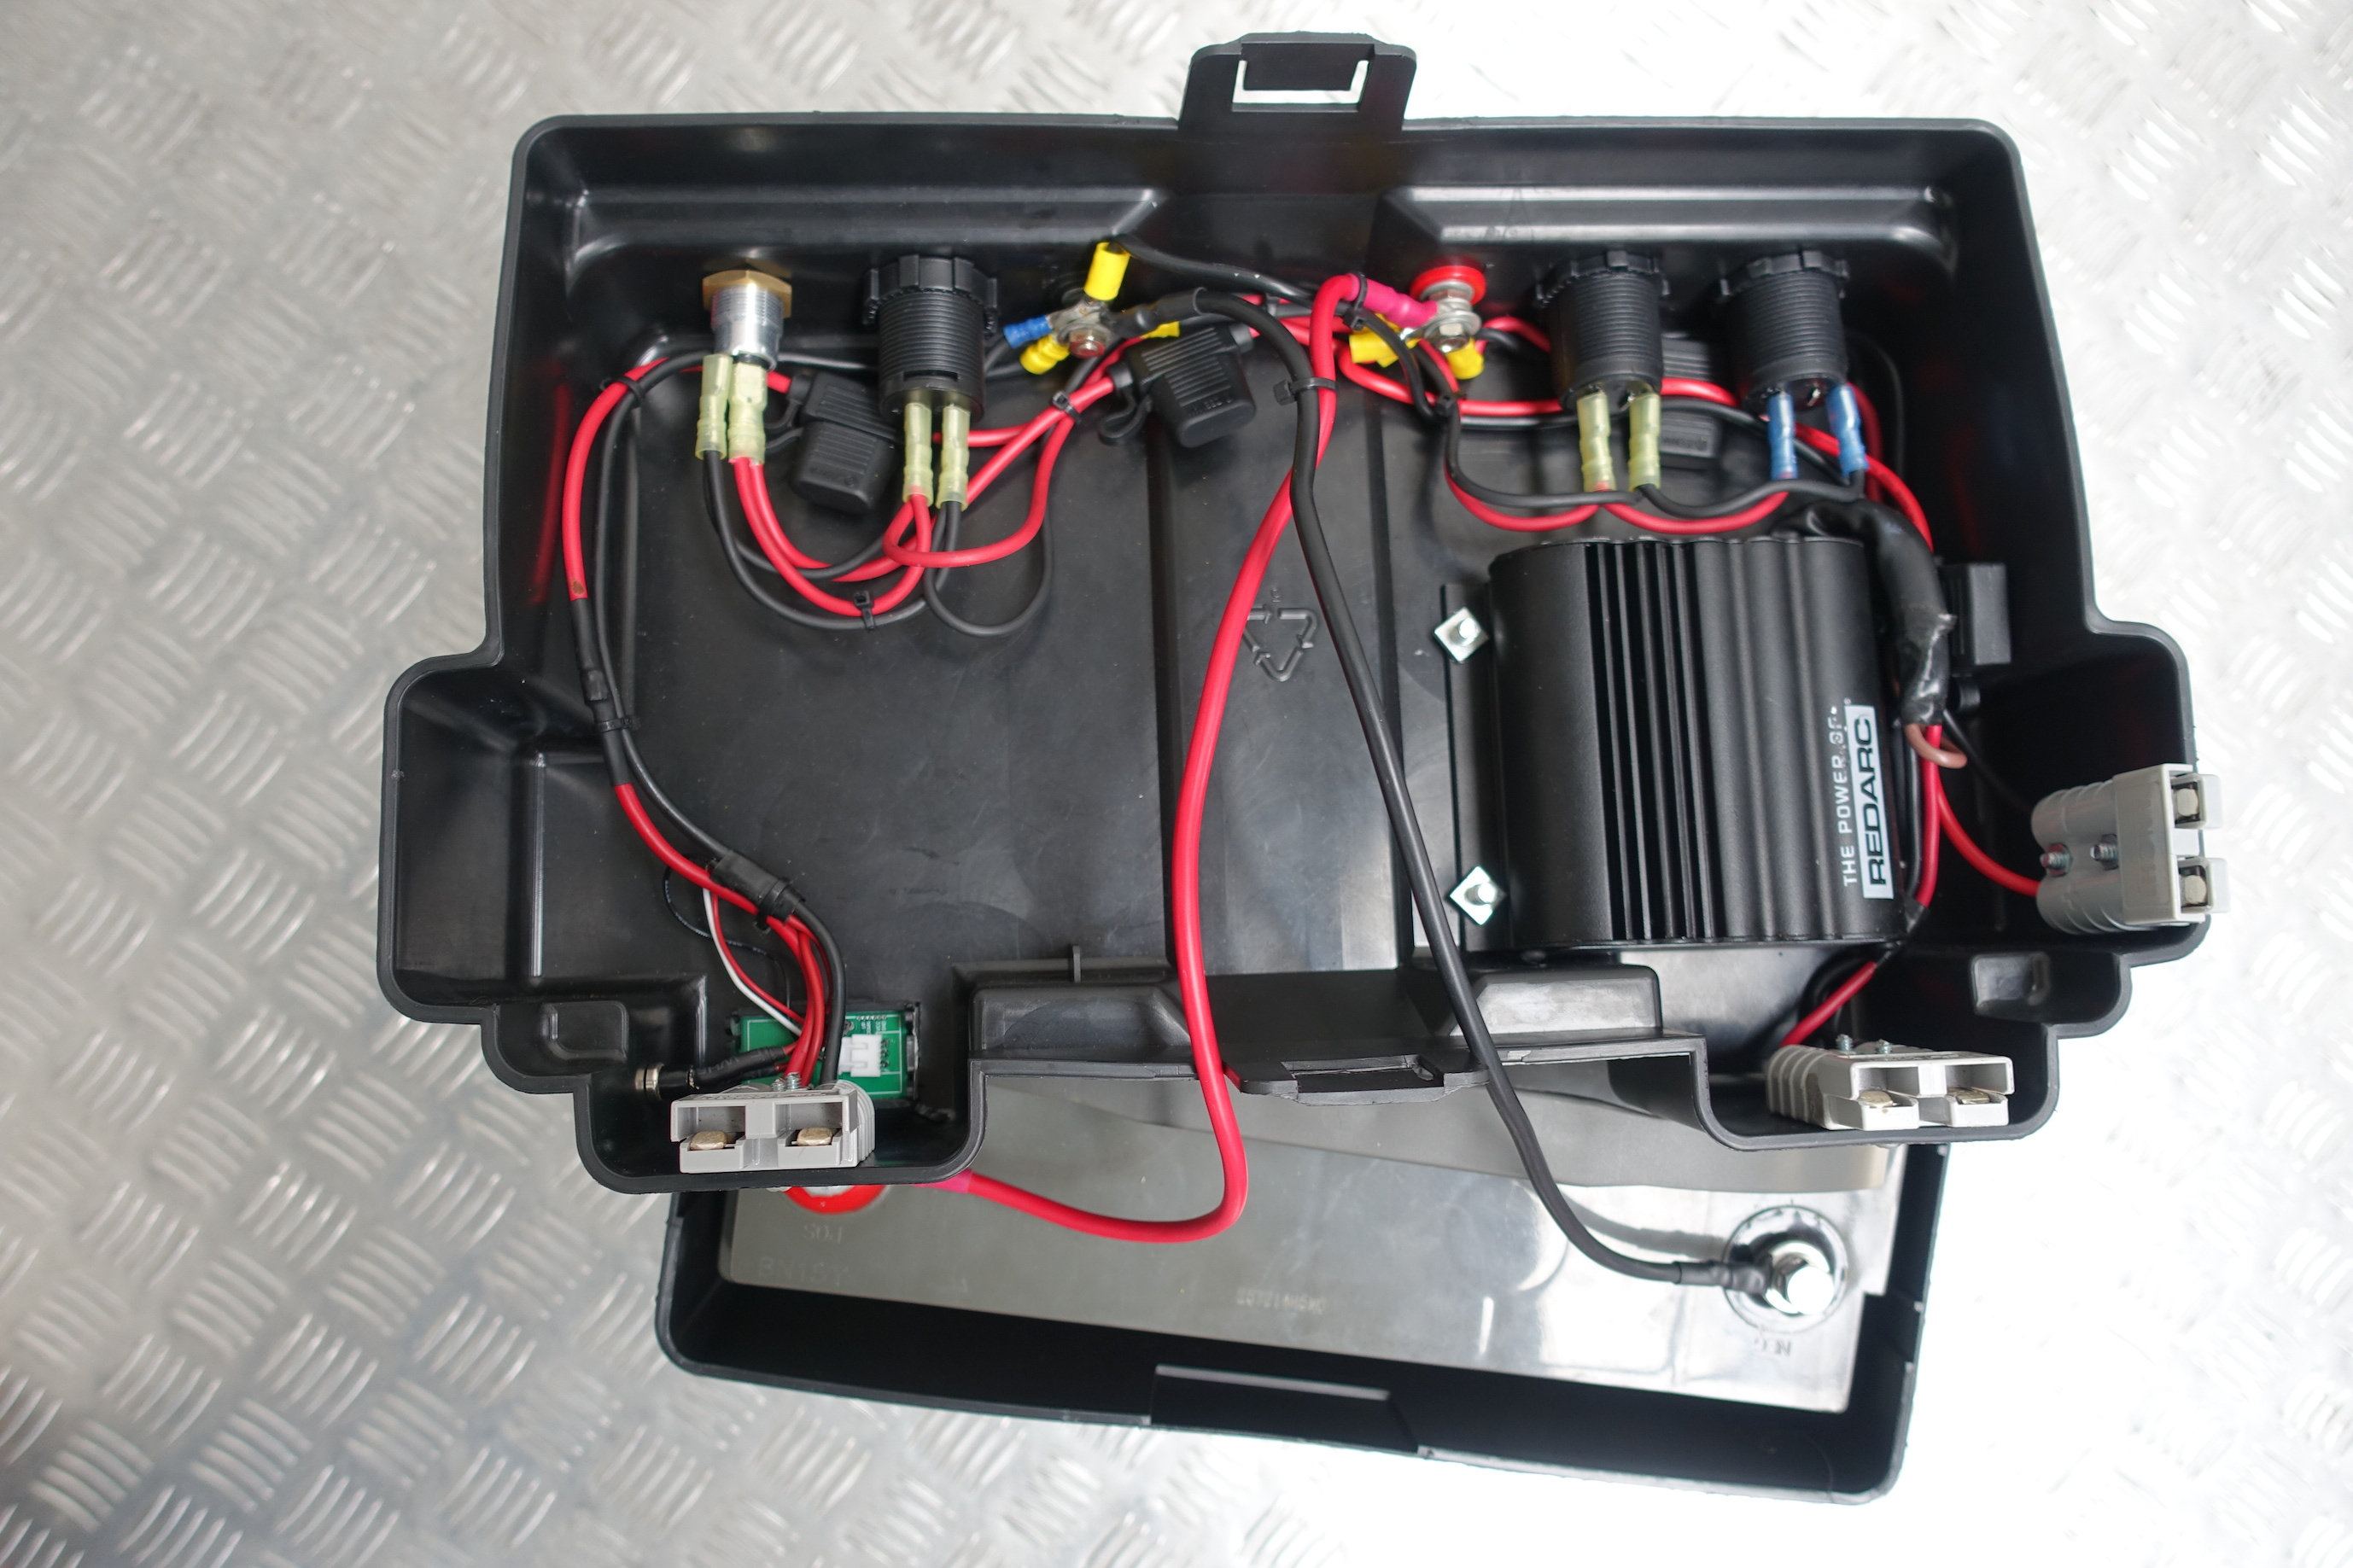 Wiring Battery Box - Wiring Diagram Show on kawasaki battery wiring diagram, gem battery wiring diagram, yamaha battery wiring diagram, club car battery wiring diagram, e-z-go battery wiring diagram, kenworth battery wiring diagram, mitsubishi battery wiring diagram, john deere battery wiring diagram, nissan battery wiring diagram, jayco battery wiring diagram,